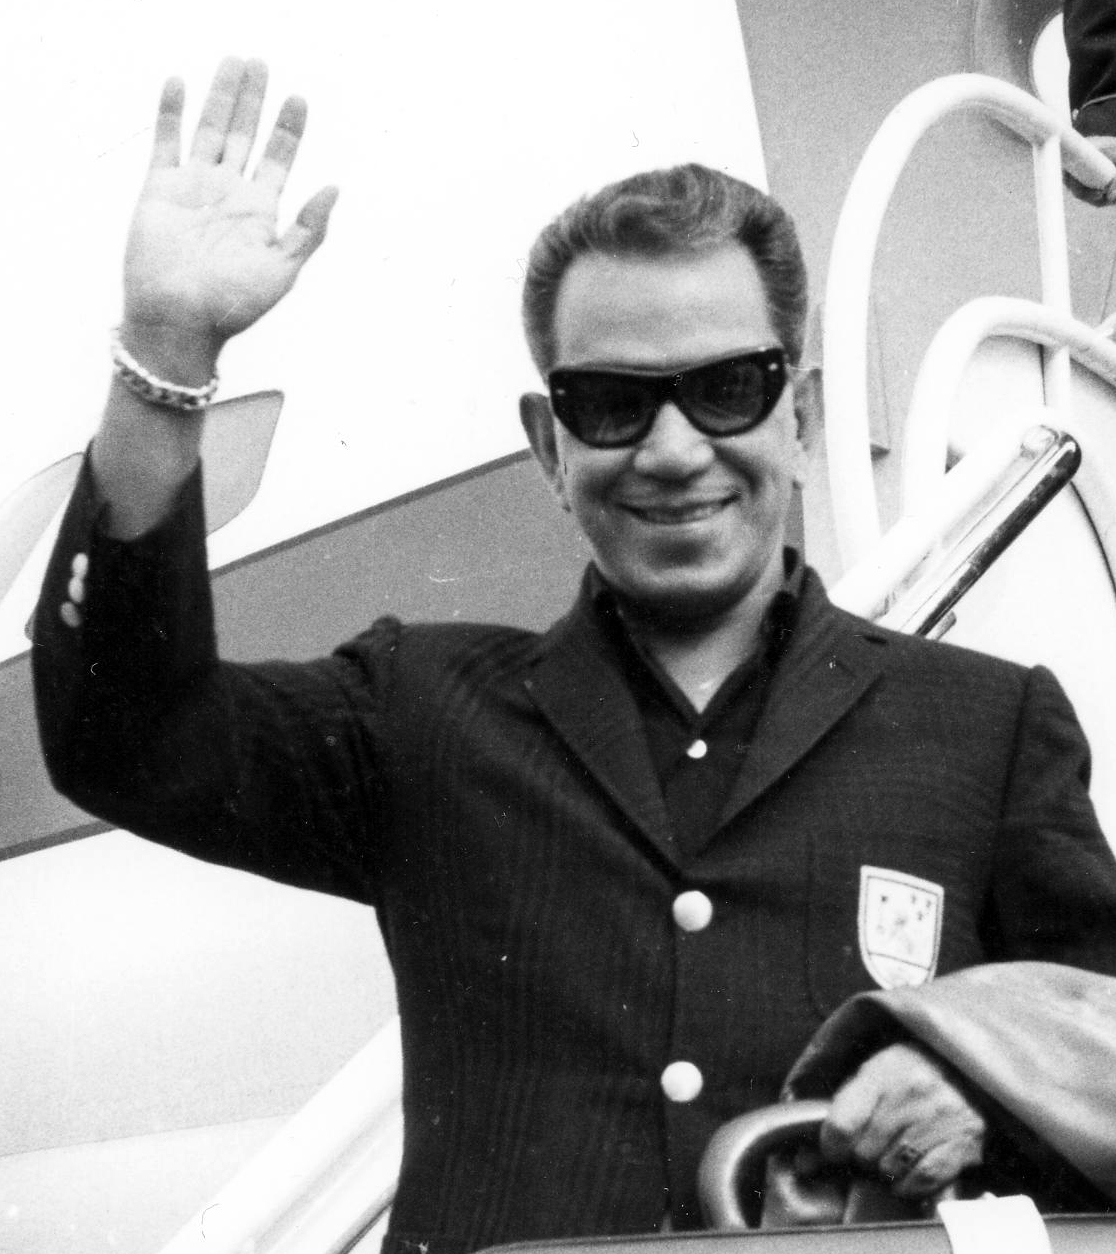 Cantinflas Cantinflas Wikipedia the free encyclopedia